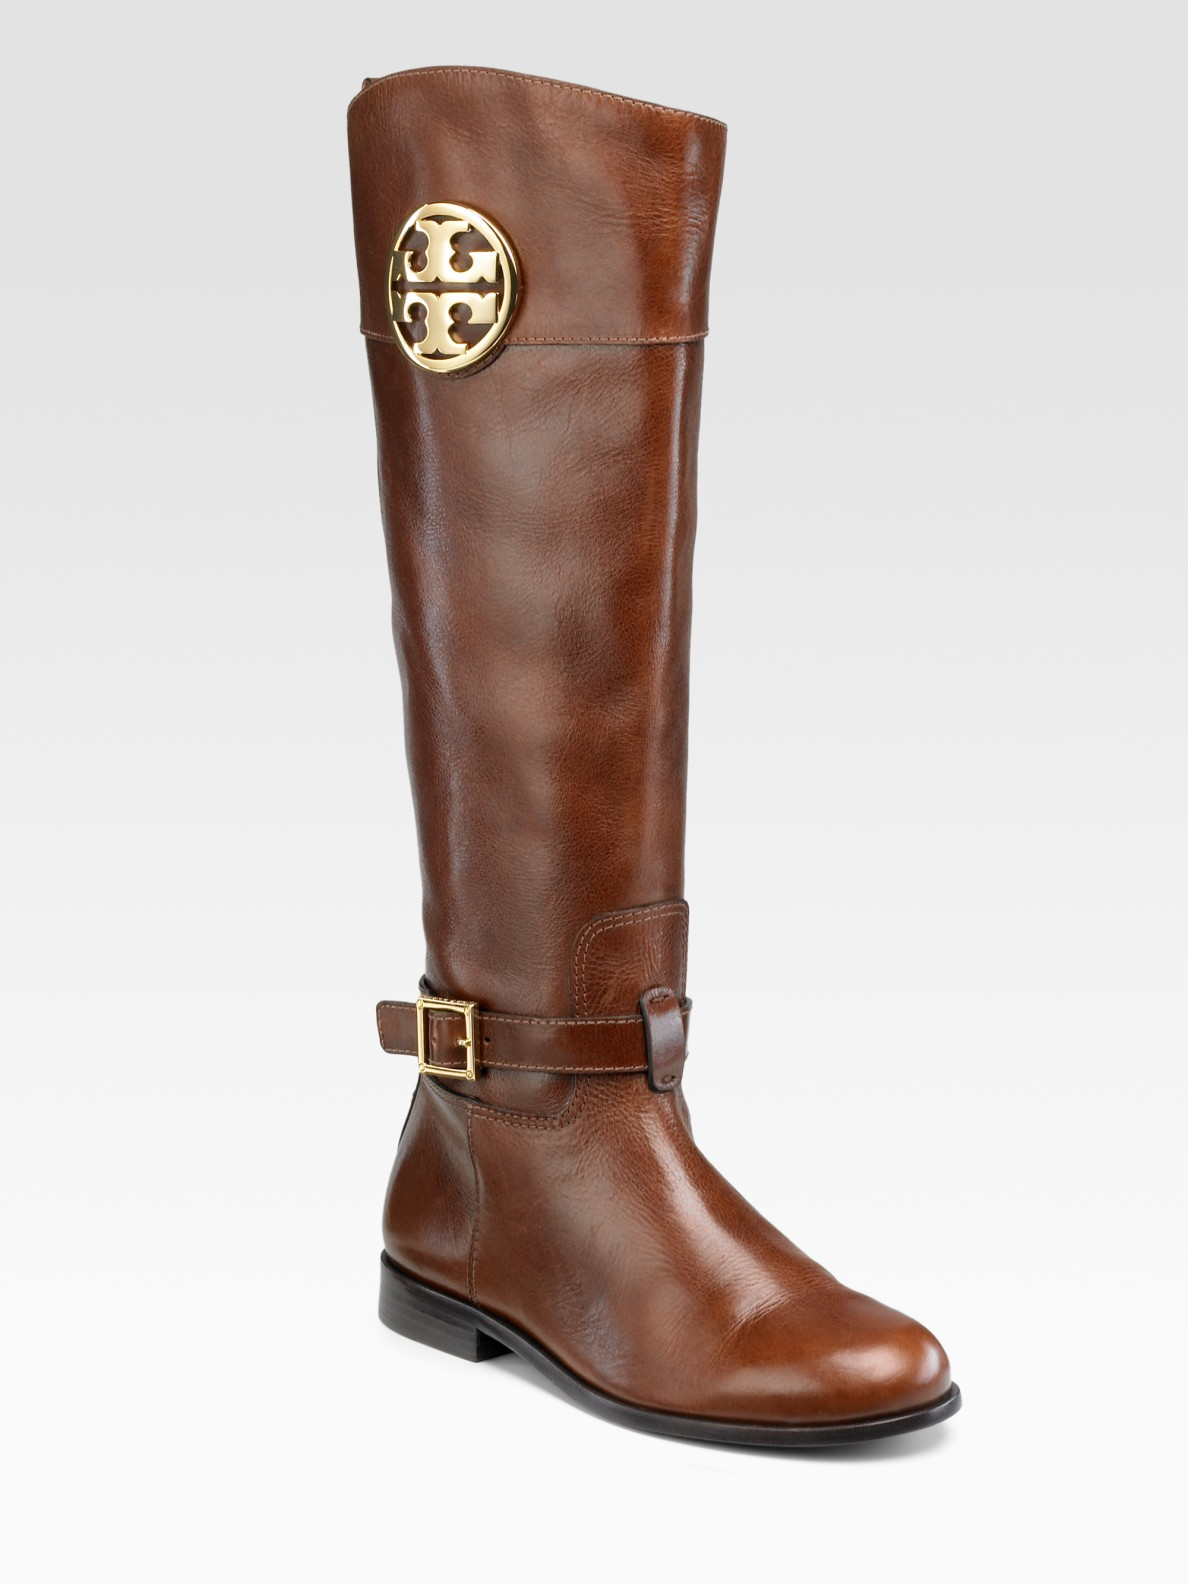 Tory burch Patterson Riding Boots in Brown | Lyst